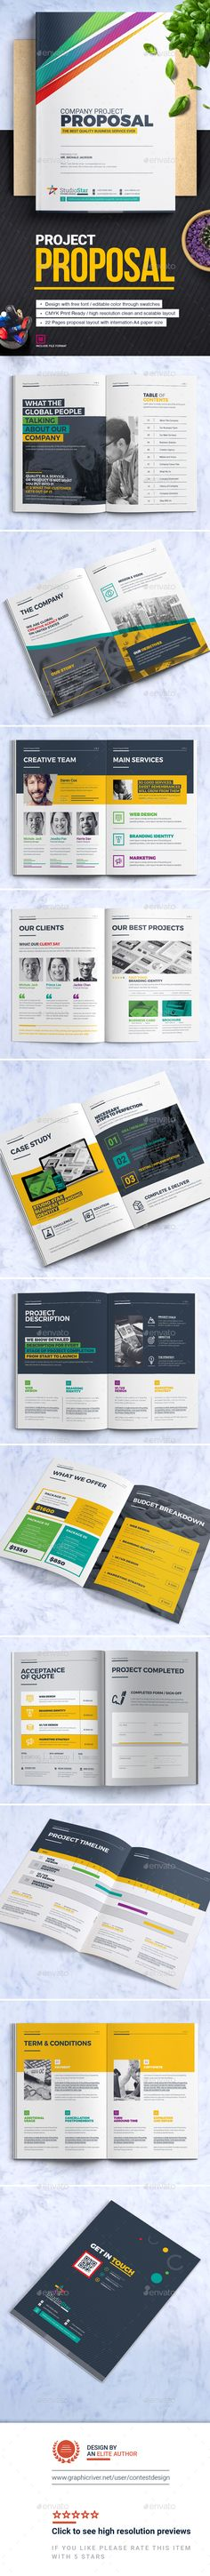 Proposal Template Vector EPS, InDesign INDD, AI Illustrator - marketing proposal templates